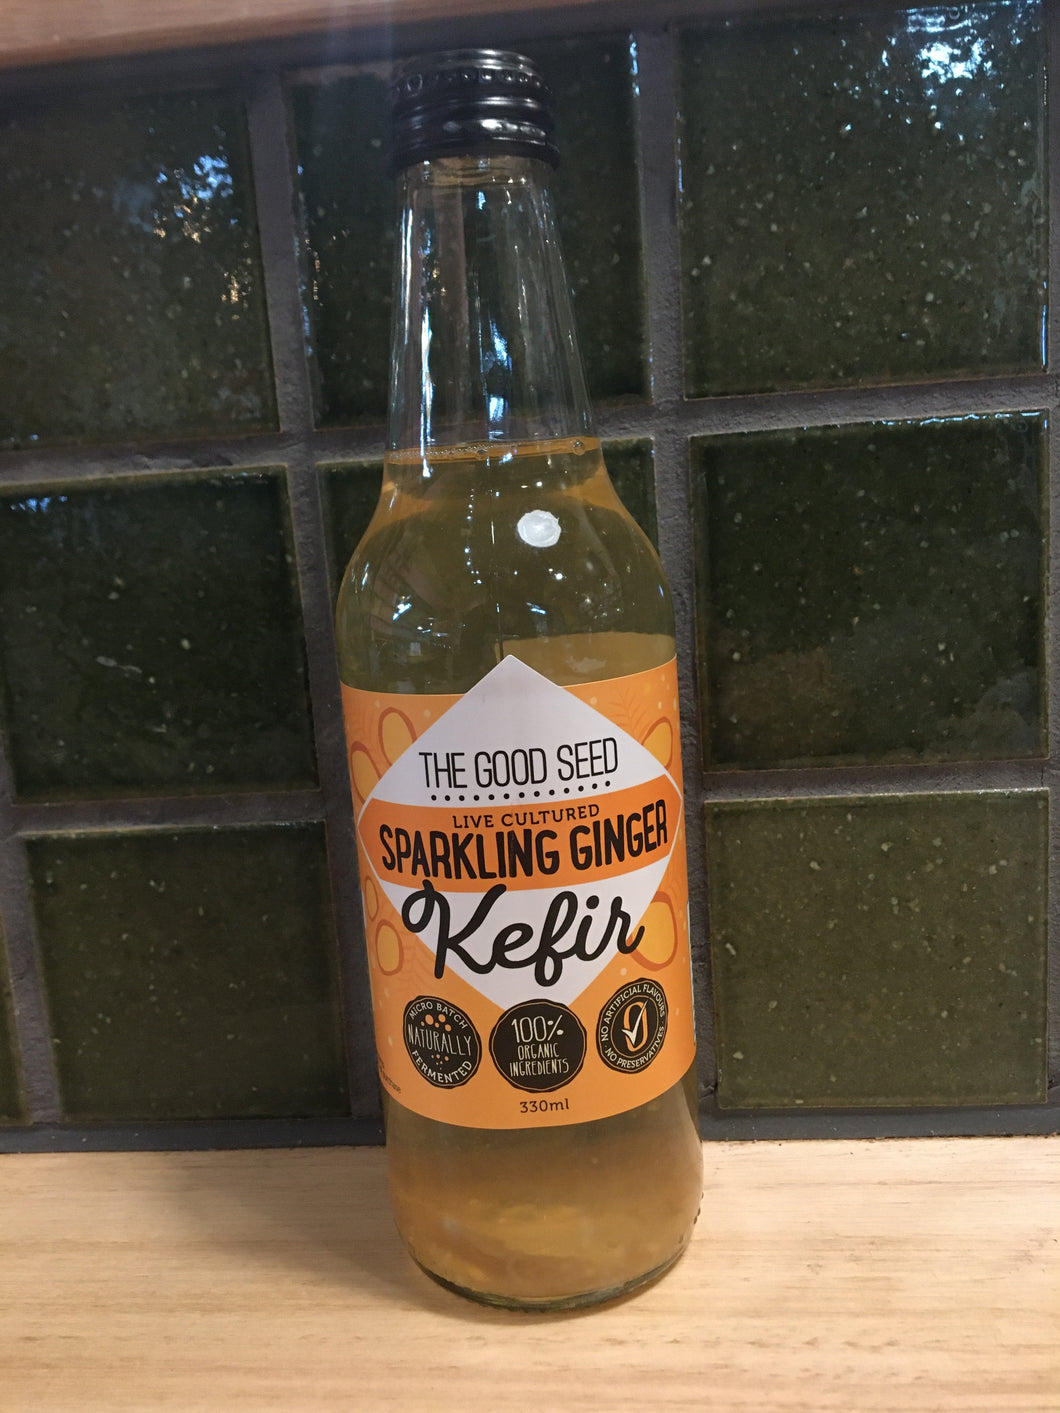 The Good Seed Kefir Sparkling Ginger 330mL